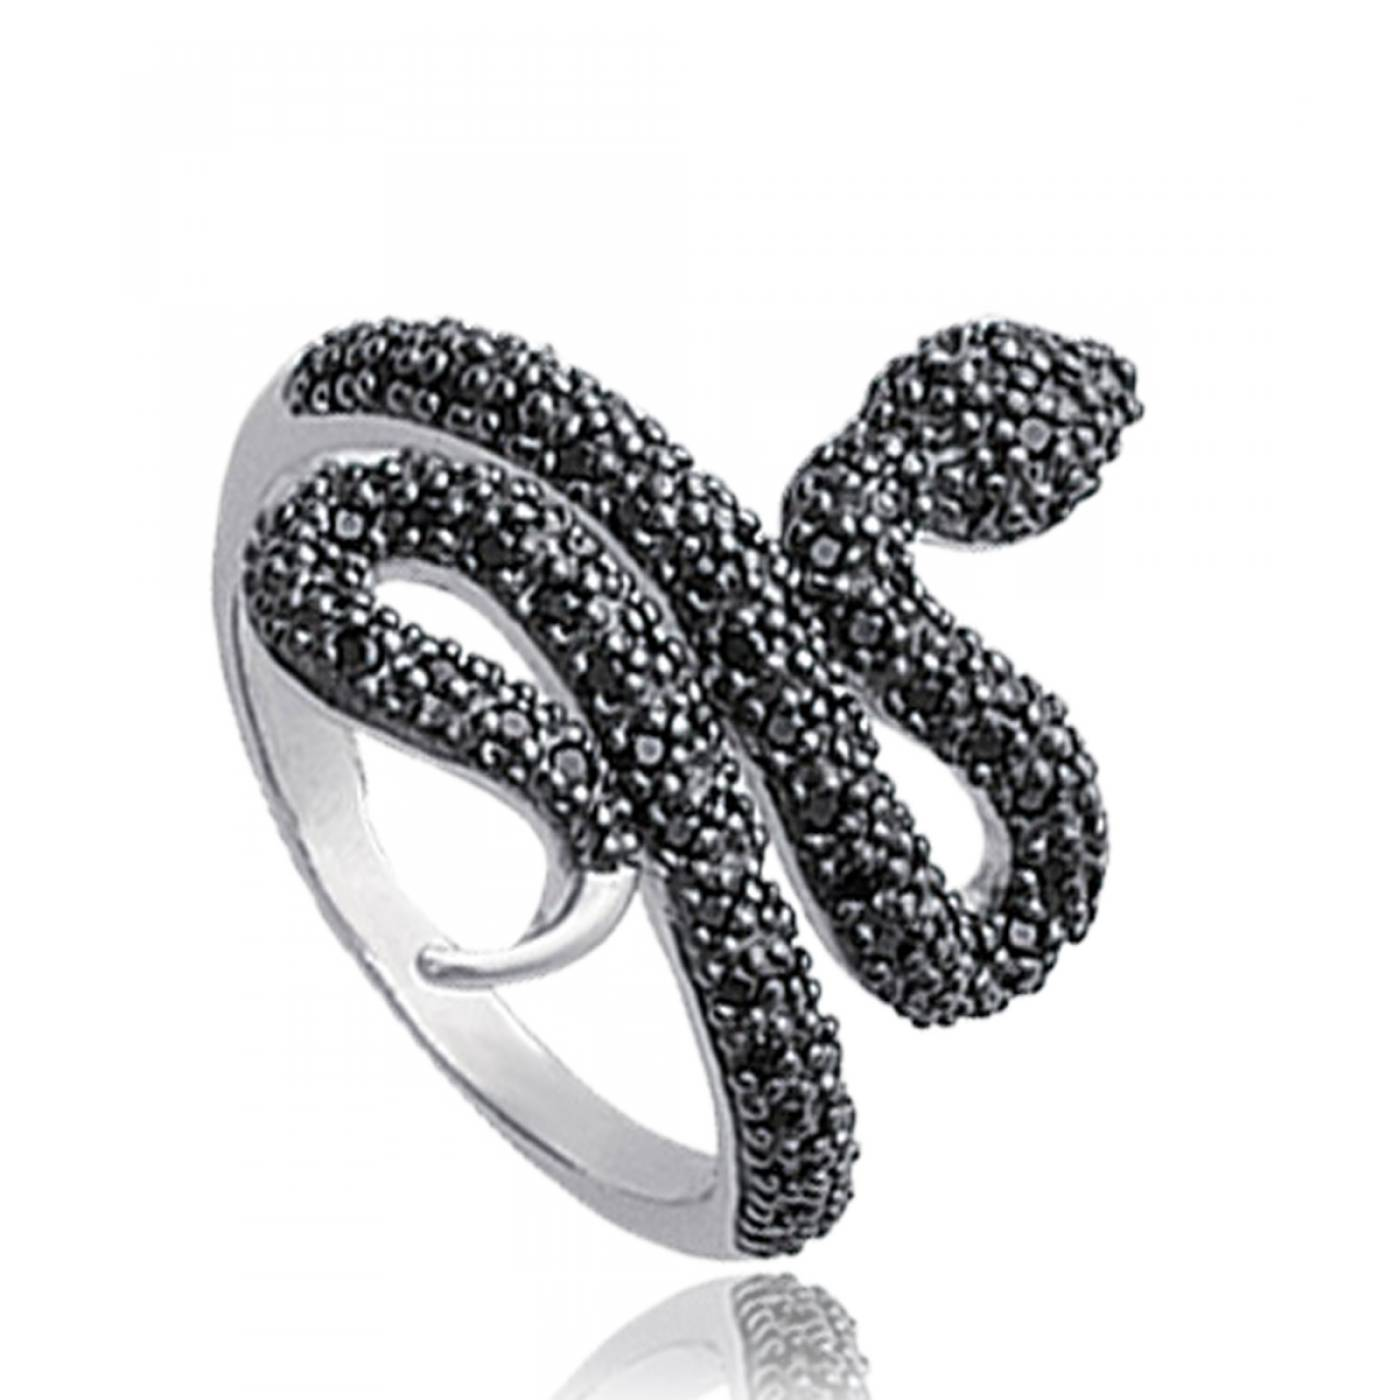 bague femme serpent strass argent noir. Black Bedroom Furniture Sets. Home Design Ideas